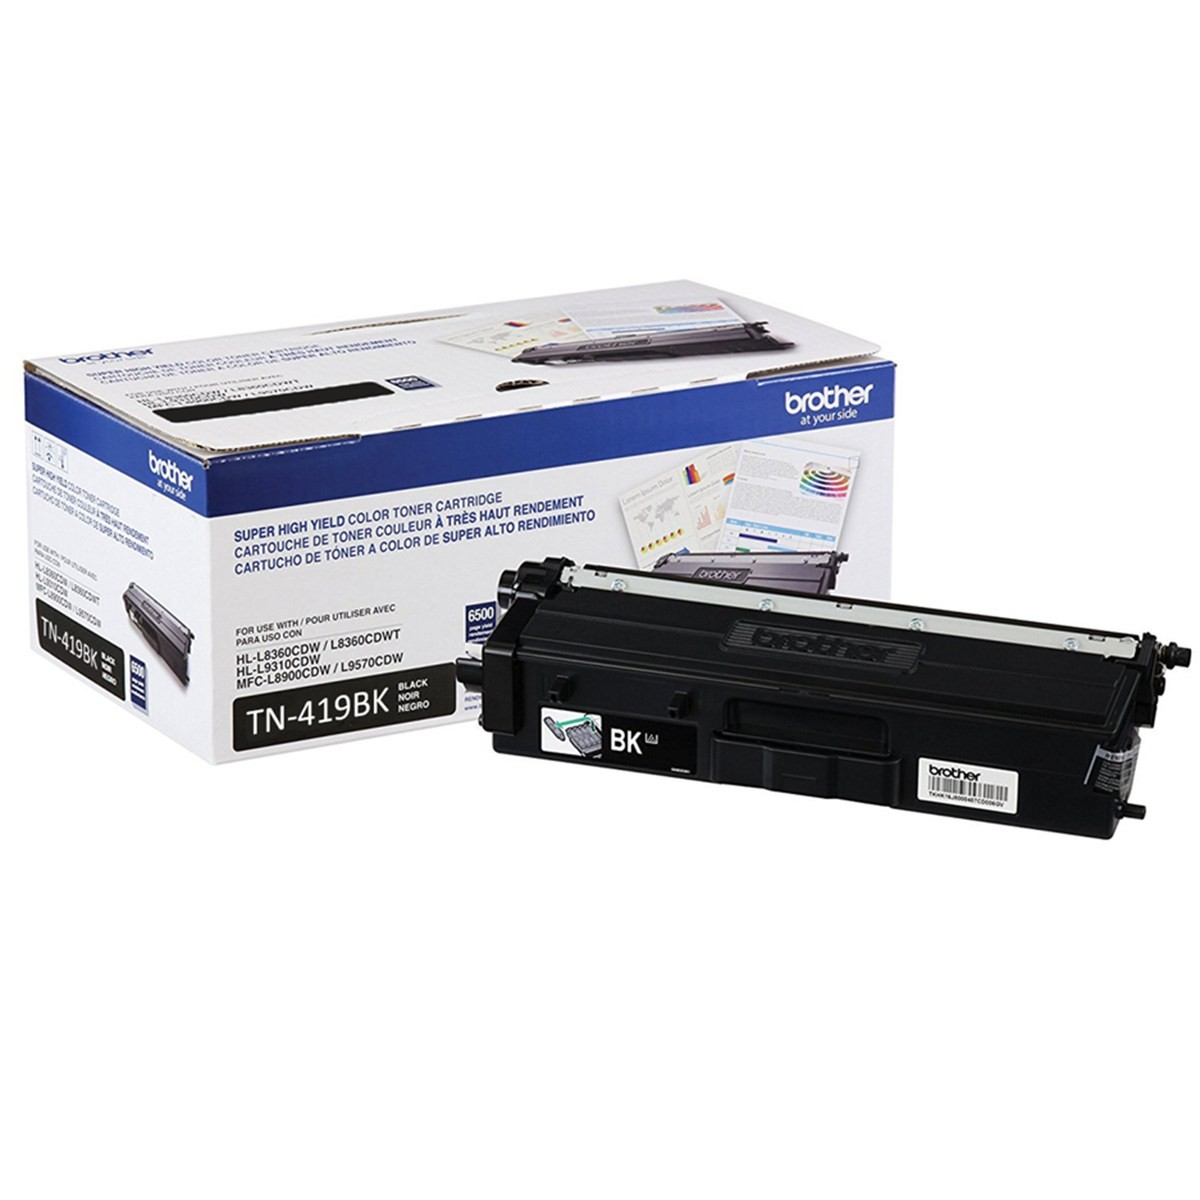 Cartucho de Toner Preto Brother TN-419BK